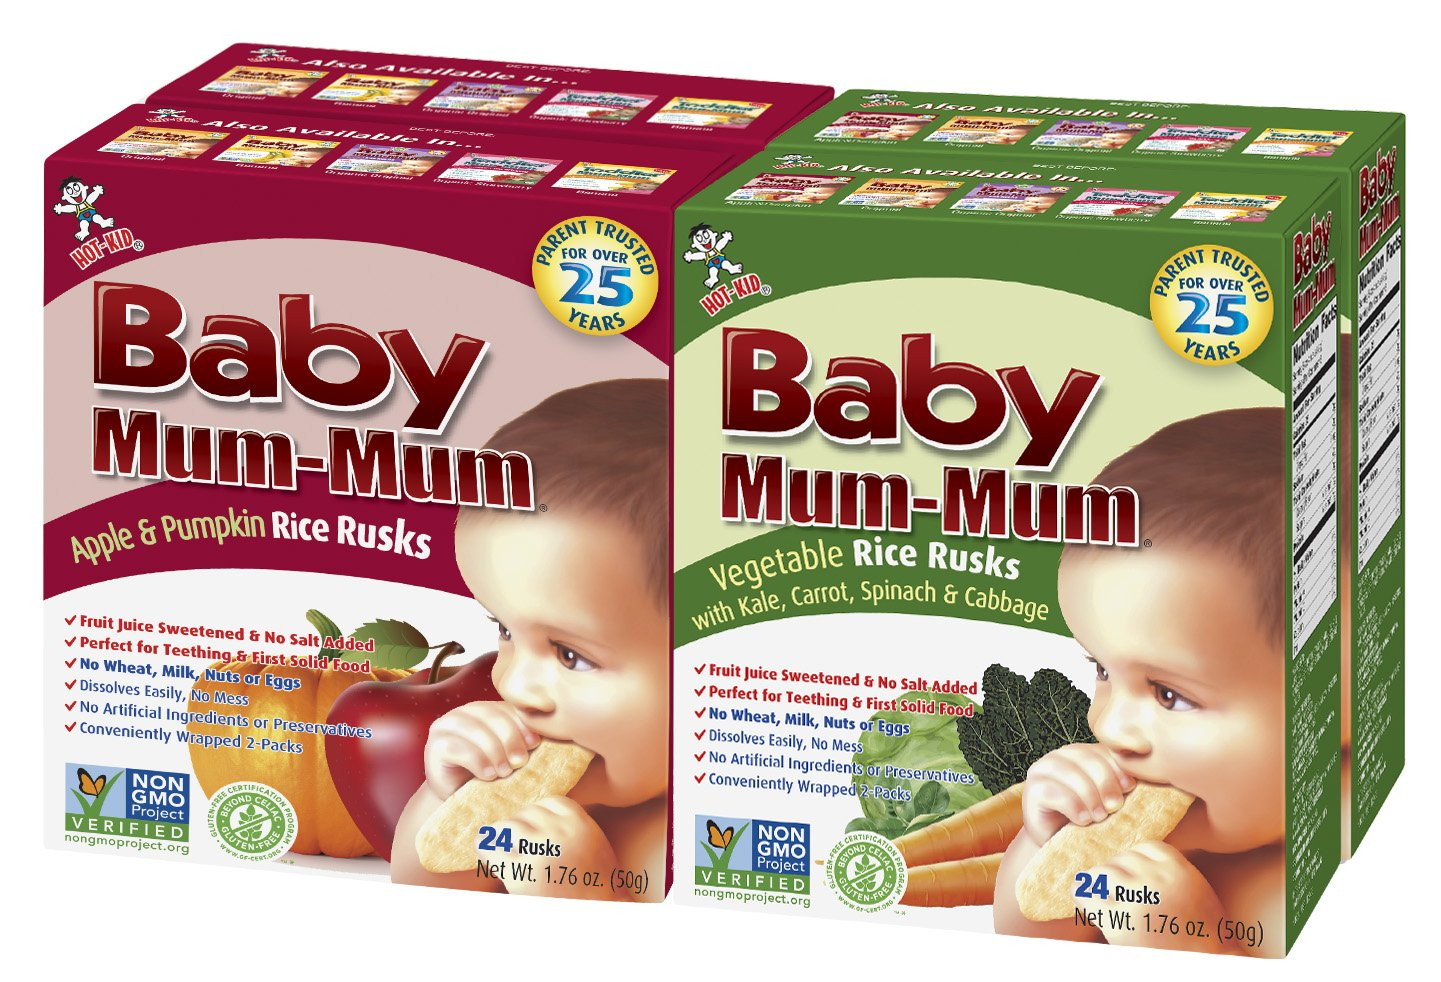 Hot-Kid Baby Mum-Mum Rice Rusks, 2 Flavor Variety Pack, 24 Pieces (Pack of 4) 2 Each: Apple & Pumpkin, Vegetable Gluten Free, Allergen Free, Non-GMO, Rice Teether Cookie by Baby Mum-Mum